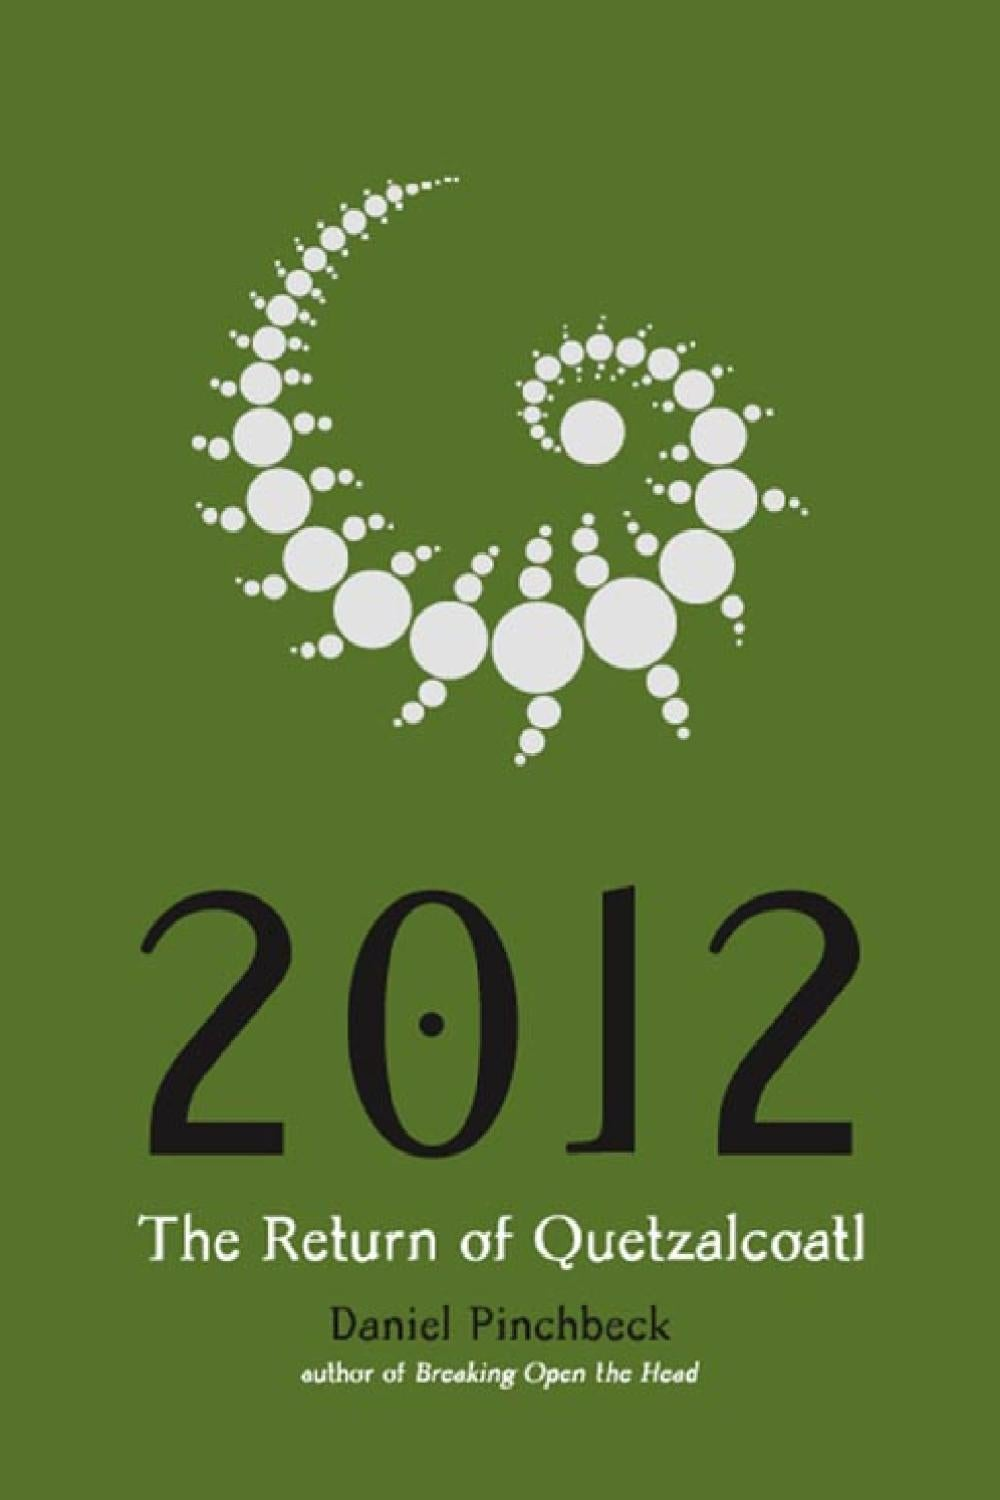 2012 the return of quetzalcoatl by joel chinchilla issuu fandeluxe Gallery